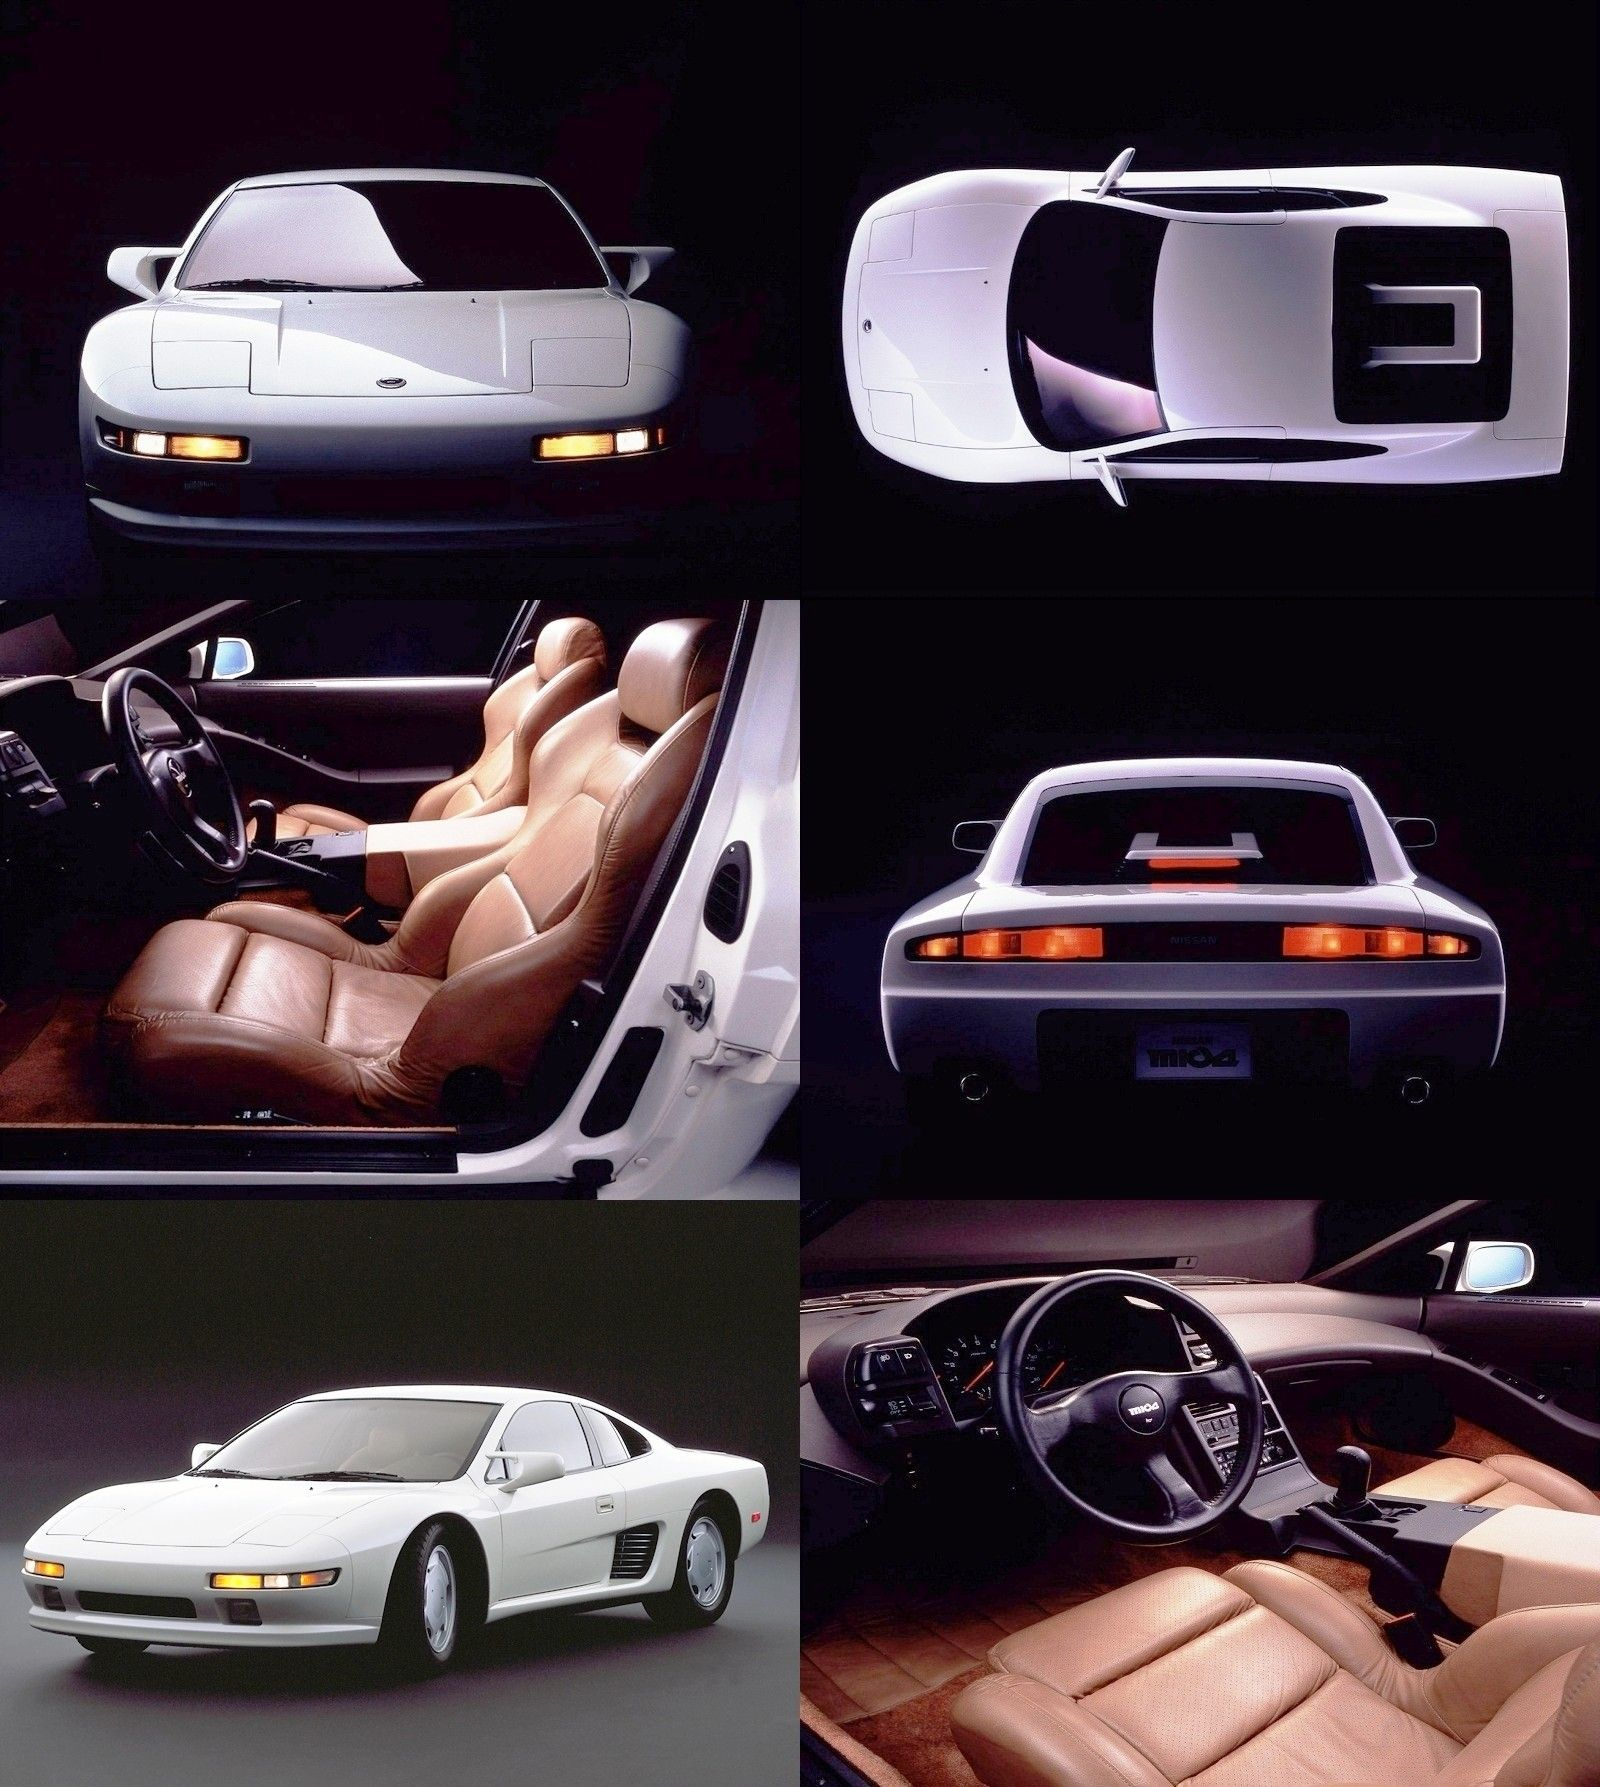 Nissan DOME Zero P1 And P2 And 1987